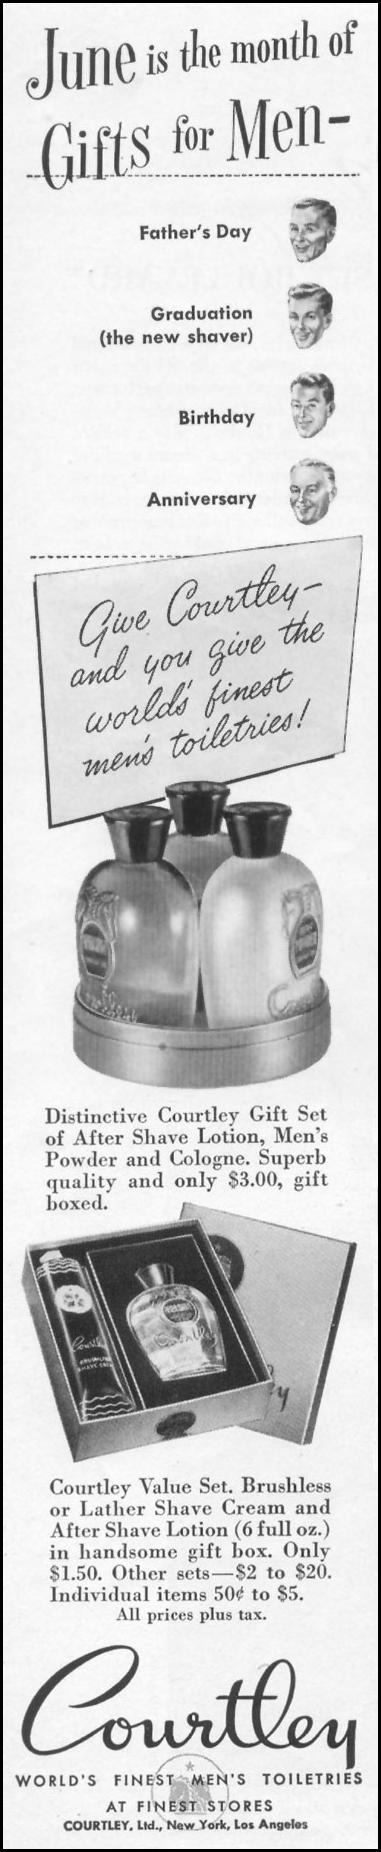 MEN'S TOILETRIES LIFE 06/05/1950 p. 82